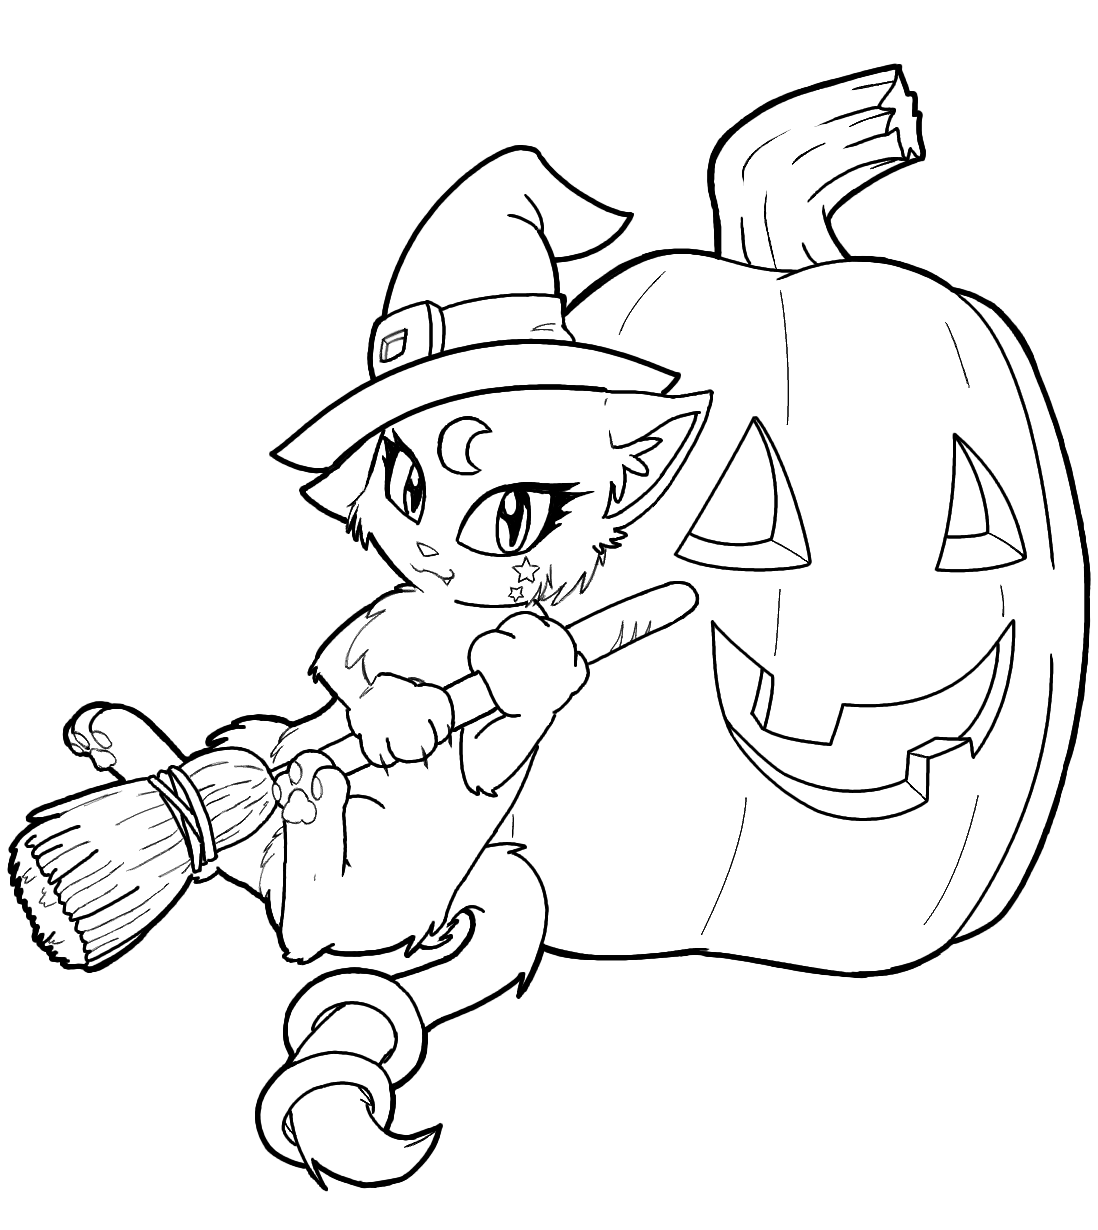 Free Printable Witch Coloring Pages For Kids | Witches, Free and ...